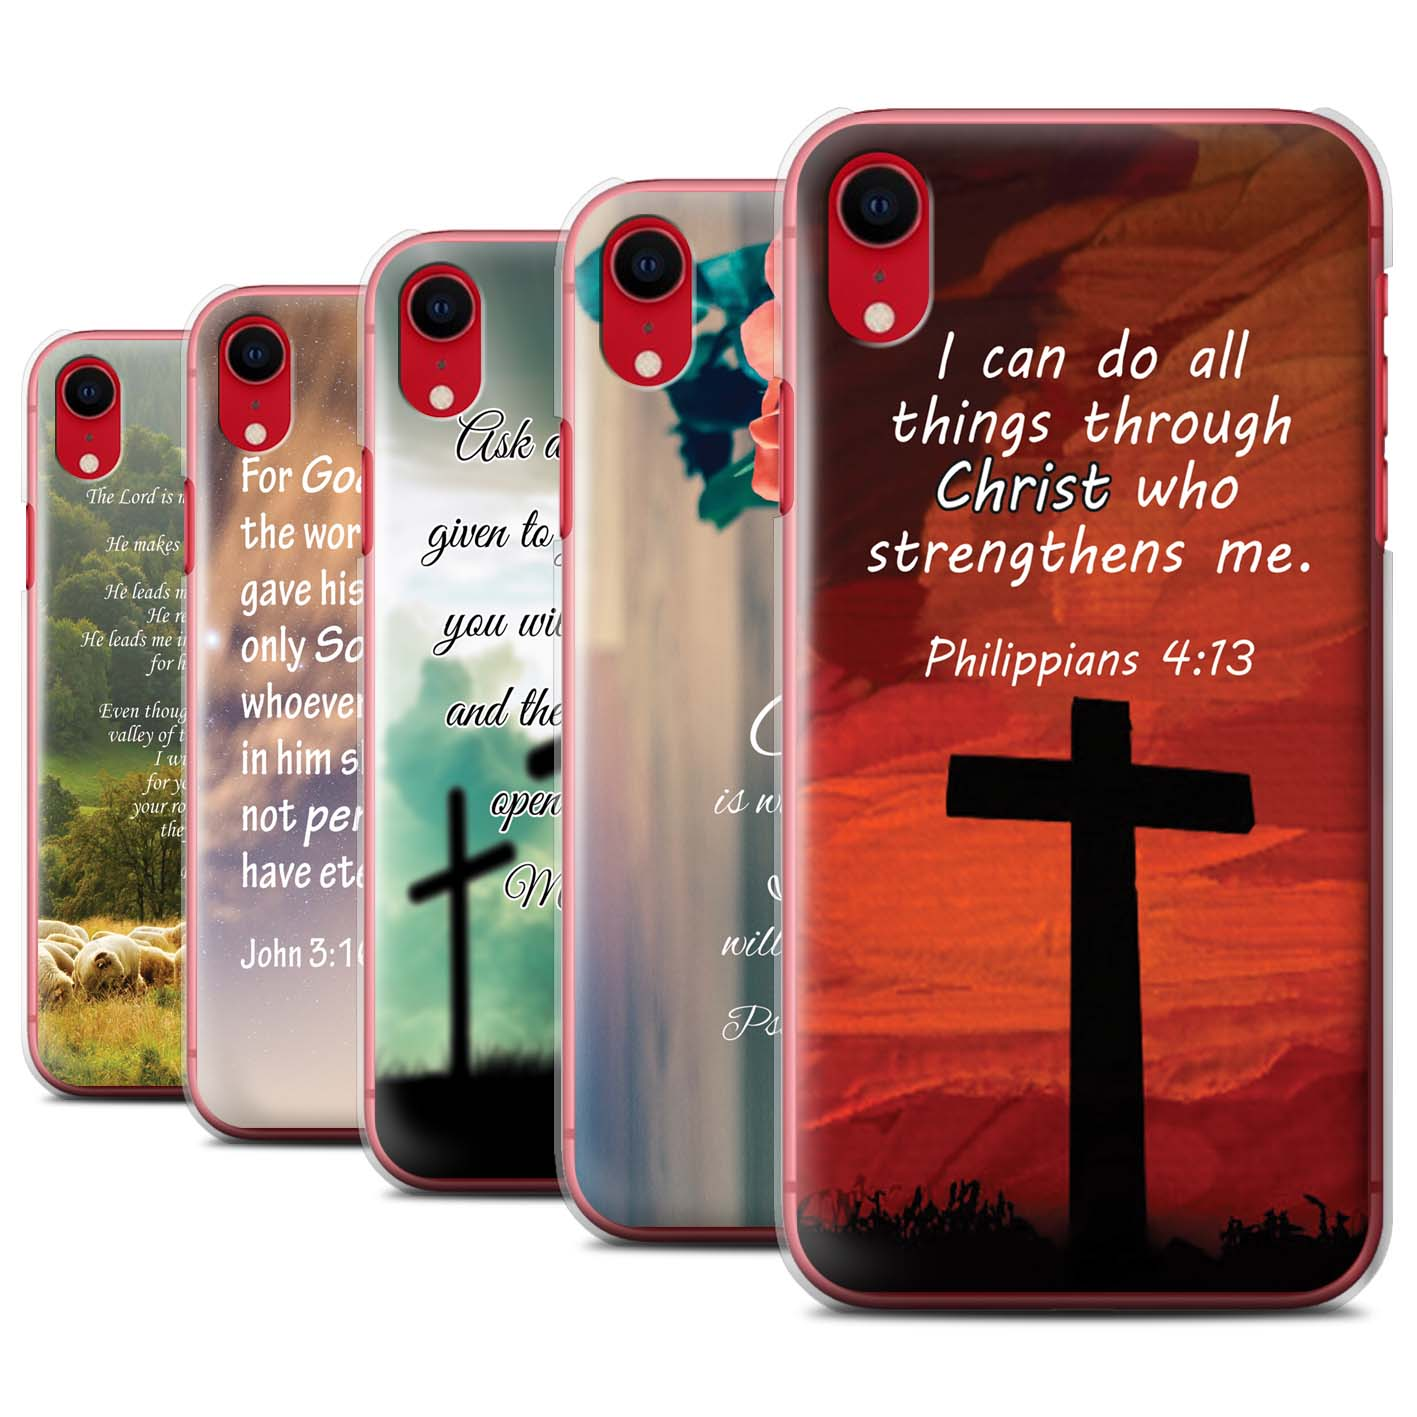 Phone-Case-for-Apple-iPhone-XR-Christian-Bible-Verse